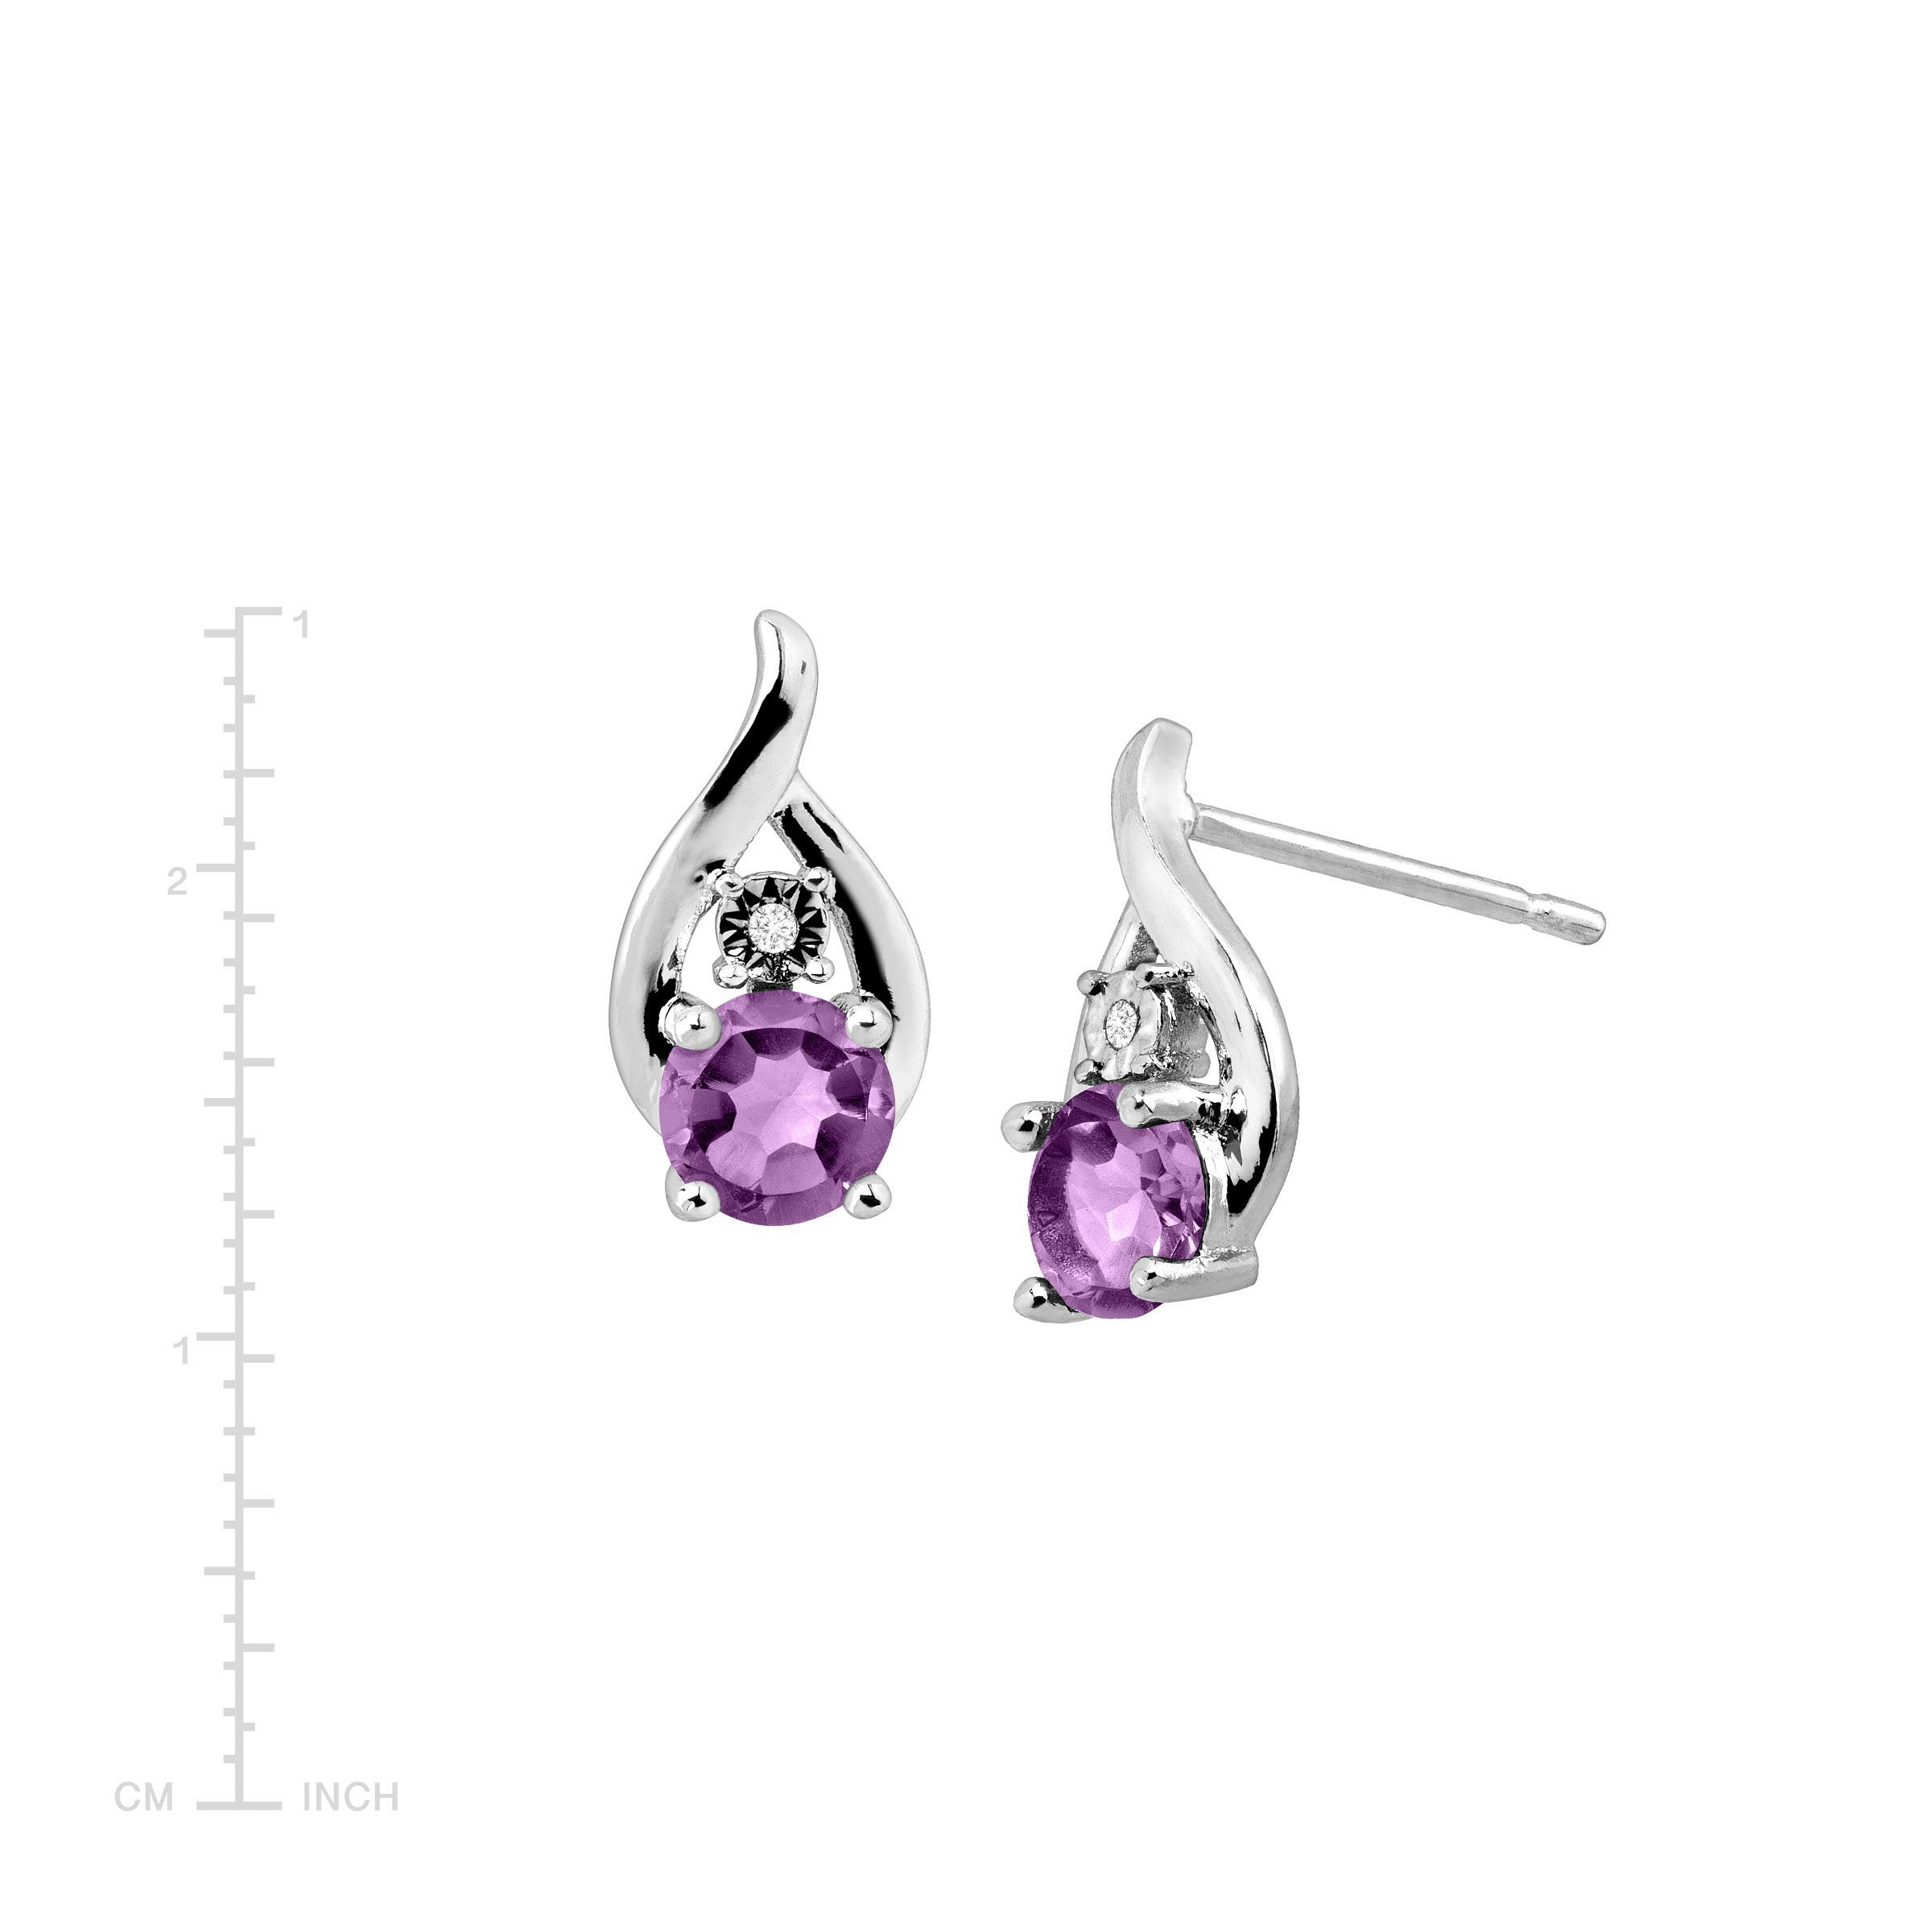 978e06f60 Natural Amethyst Droplet Stud Earrings with Diamonds in Sterling Silver